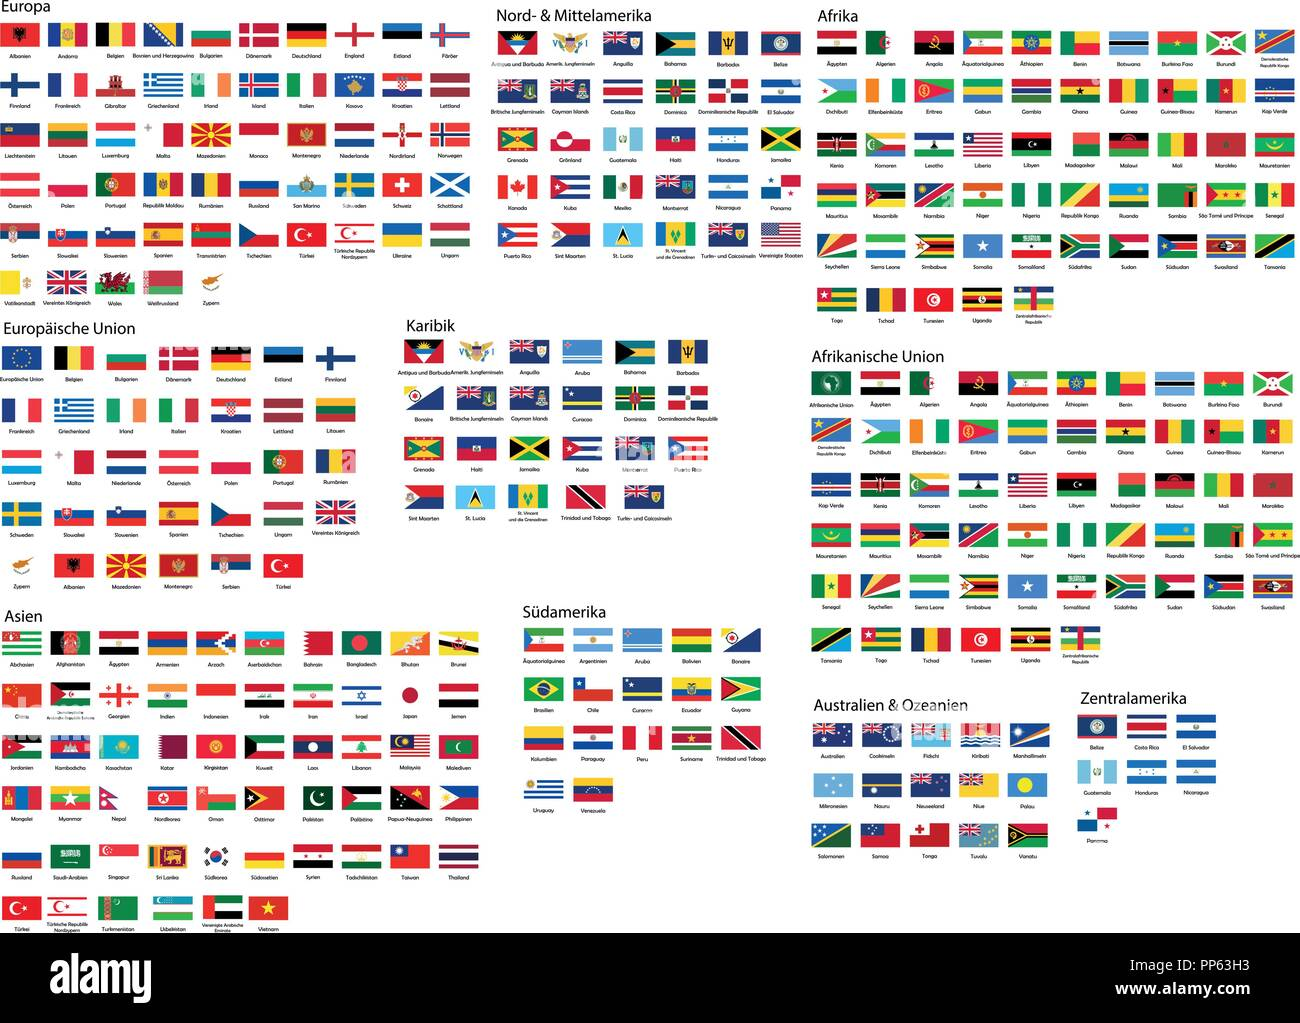 All National Flags Of The World With Names In High Quality Stock Vector Image Art Alamy